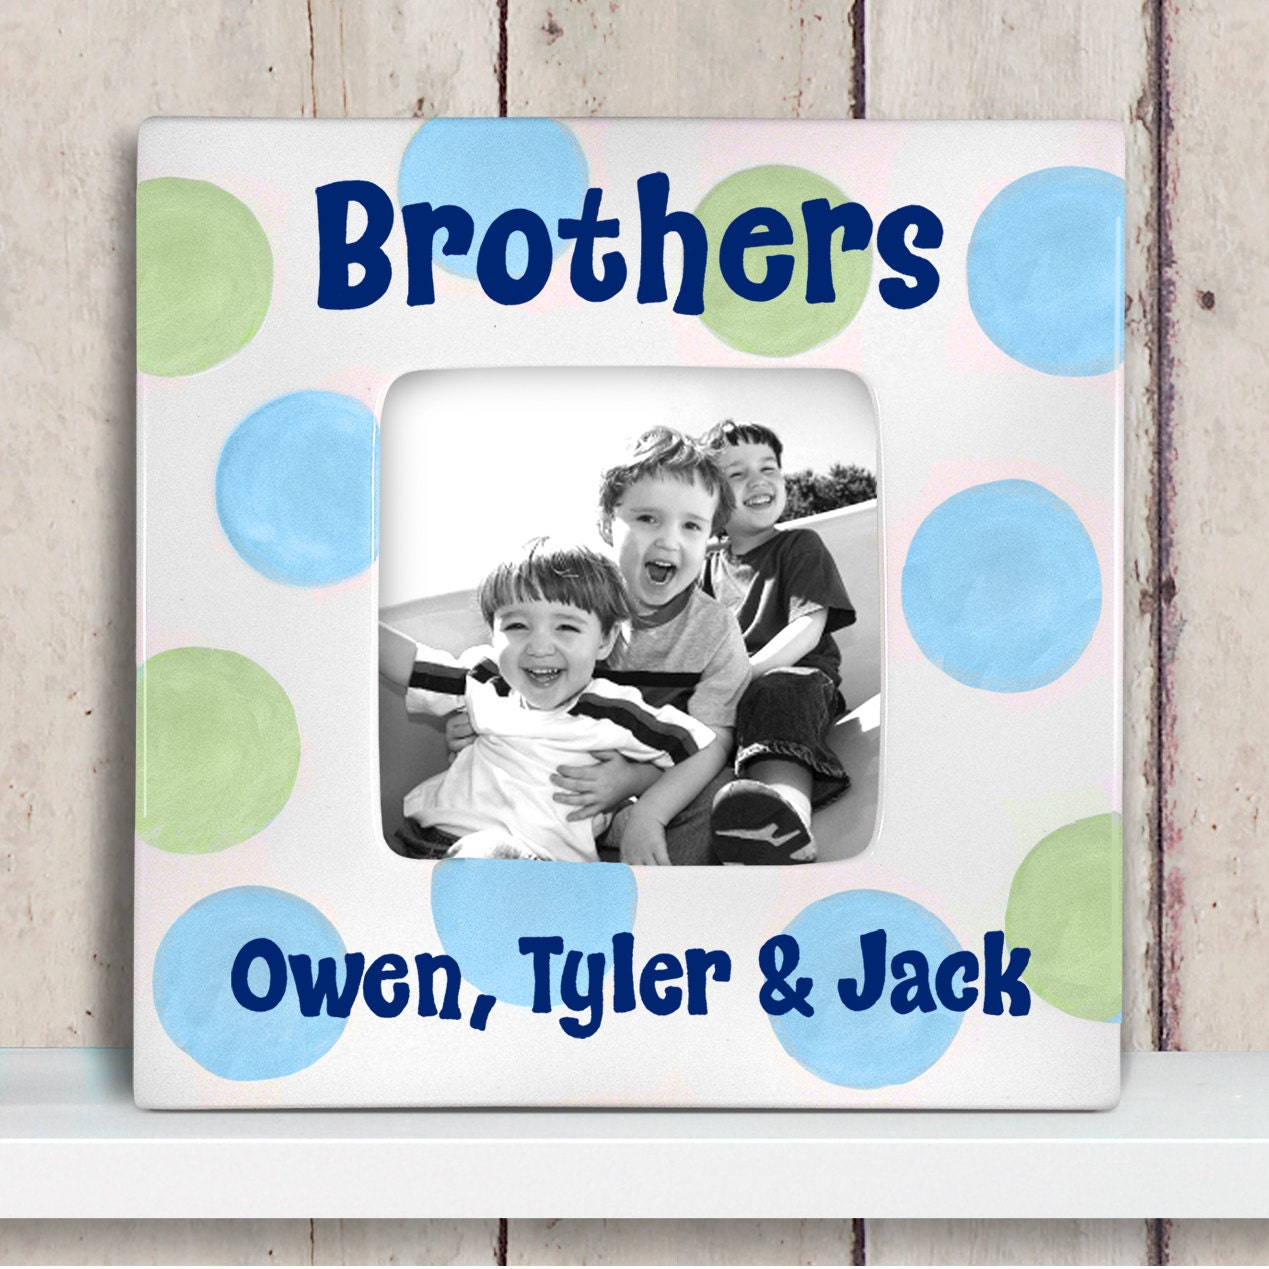 Personalized picture frame - Brothers frame - Big brother gift